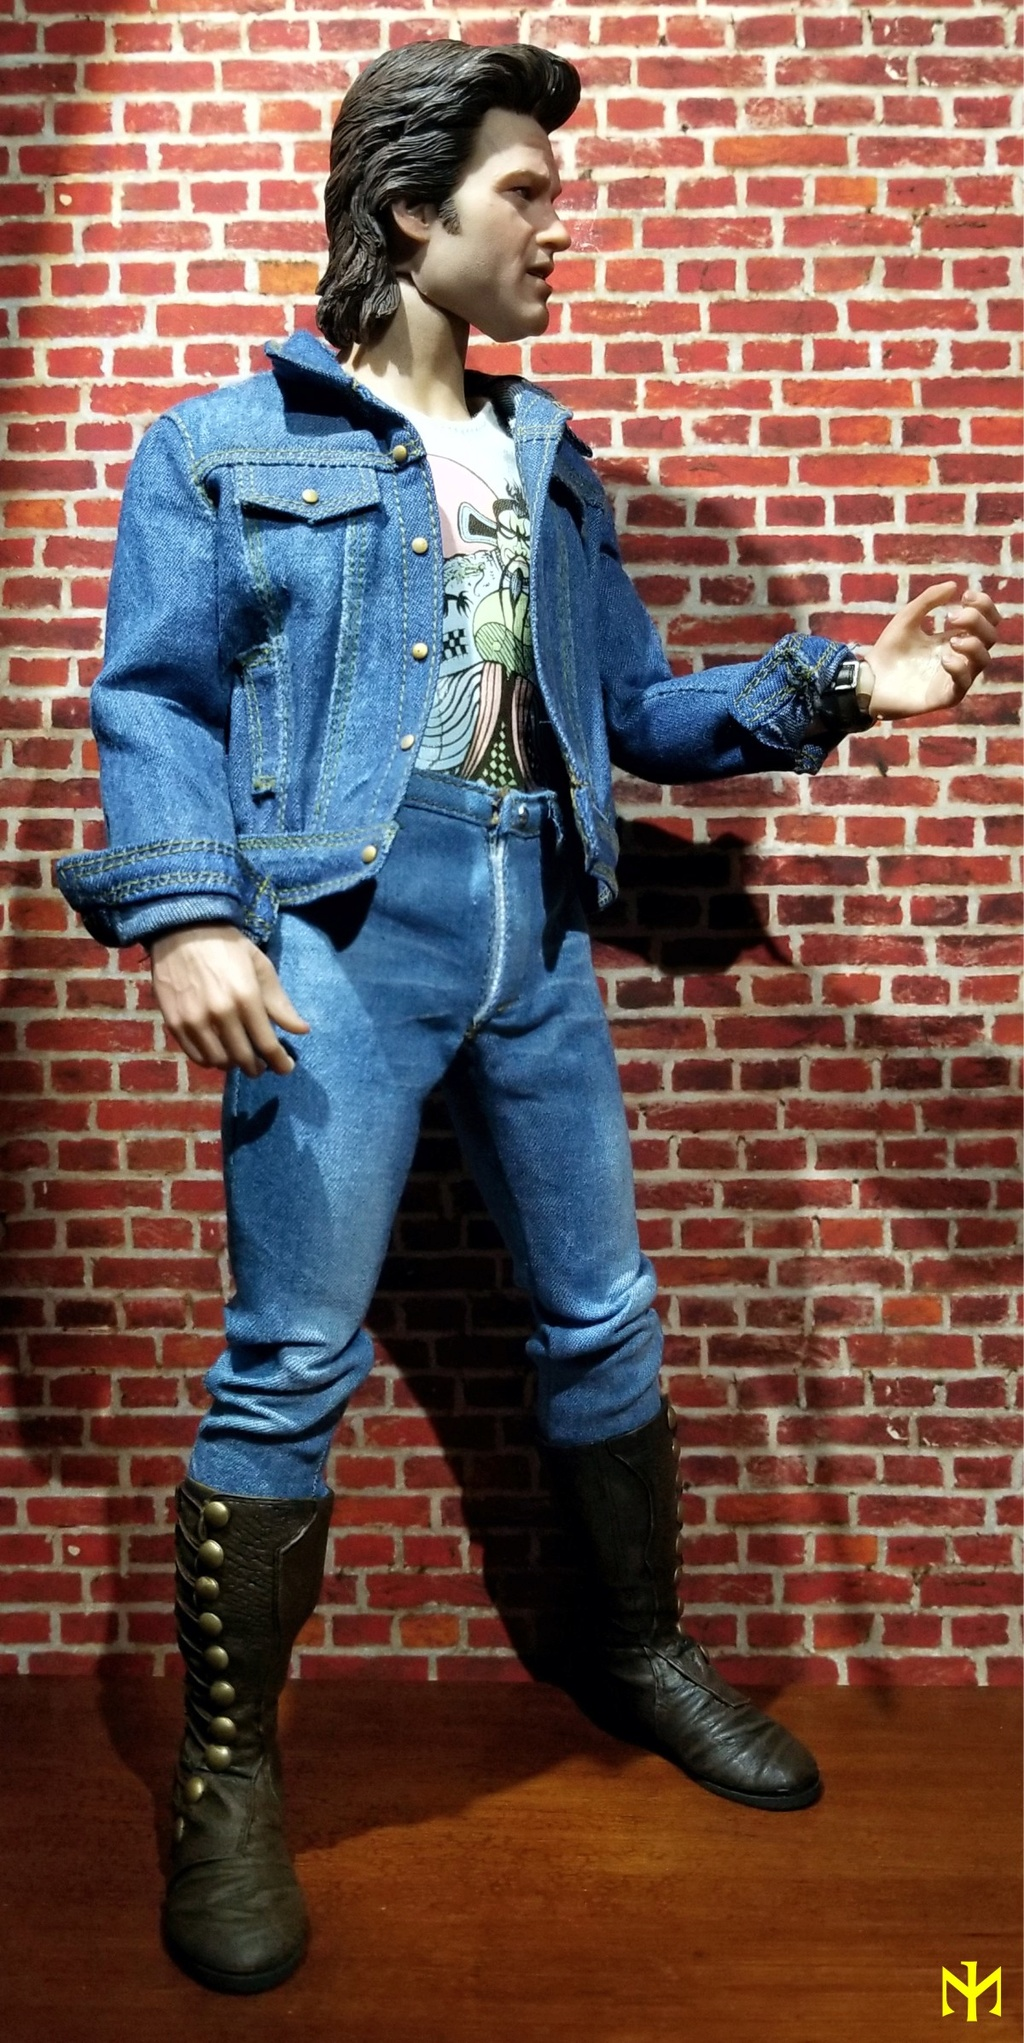 productreview - Sideshow Jack Burton Detailed Review Sscjb011